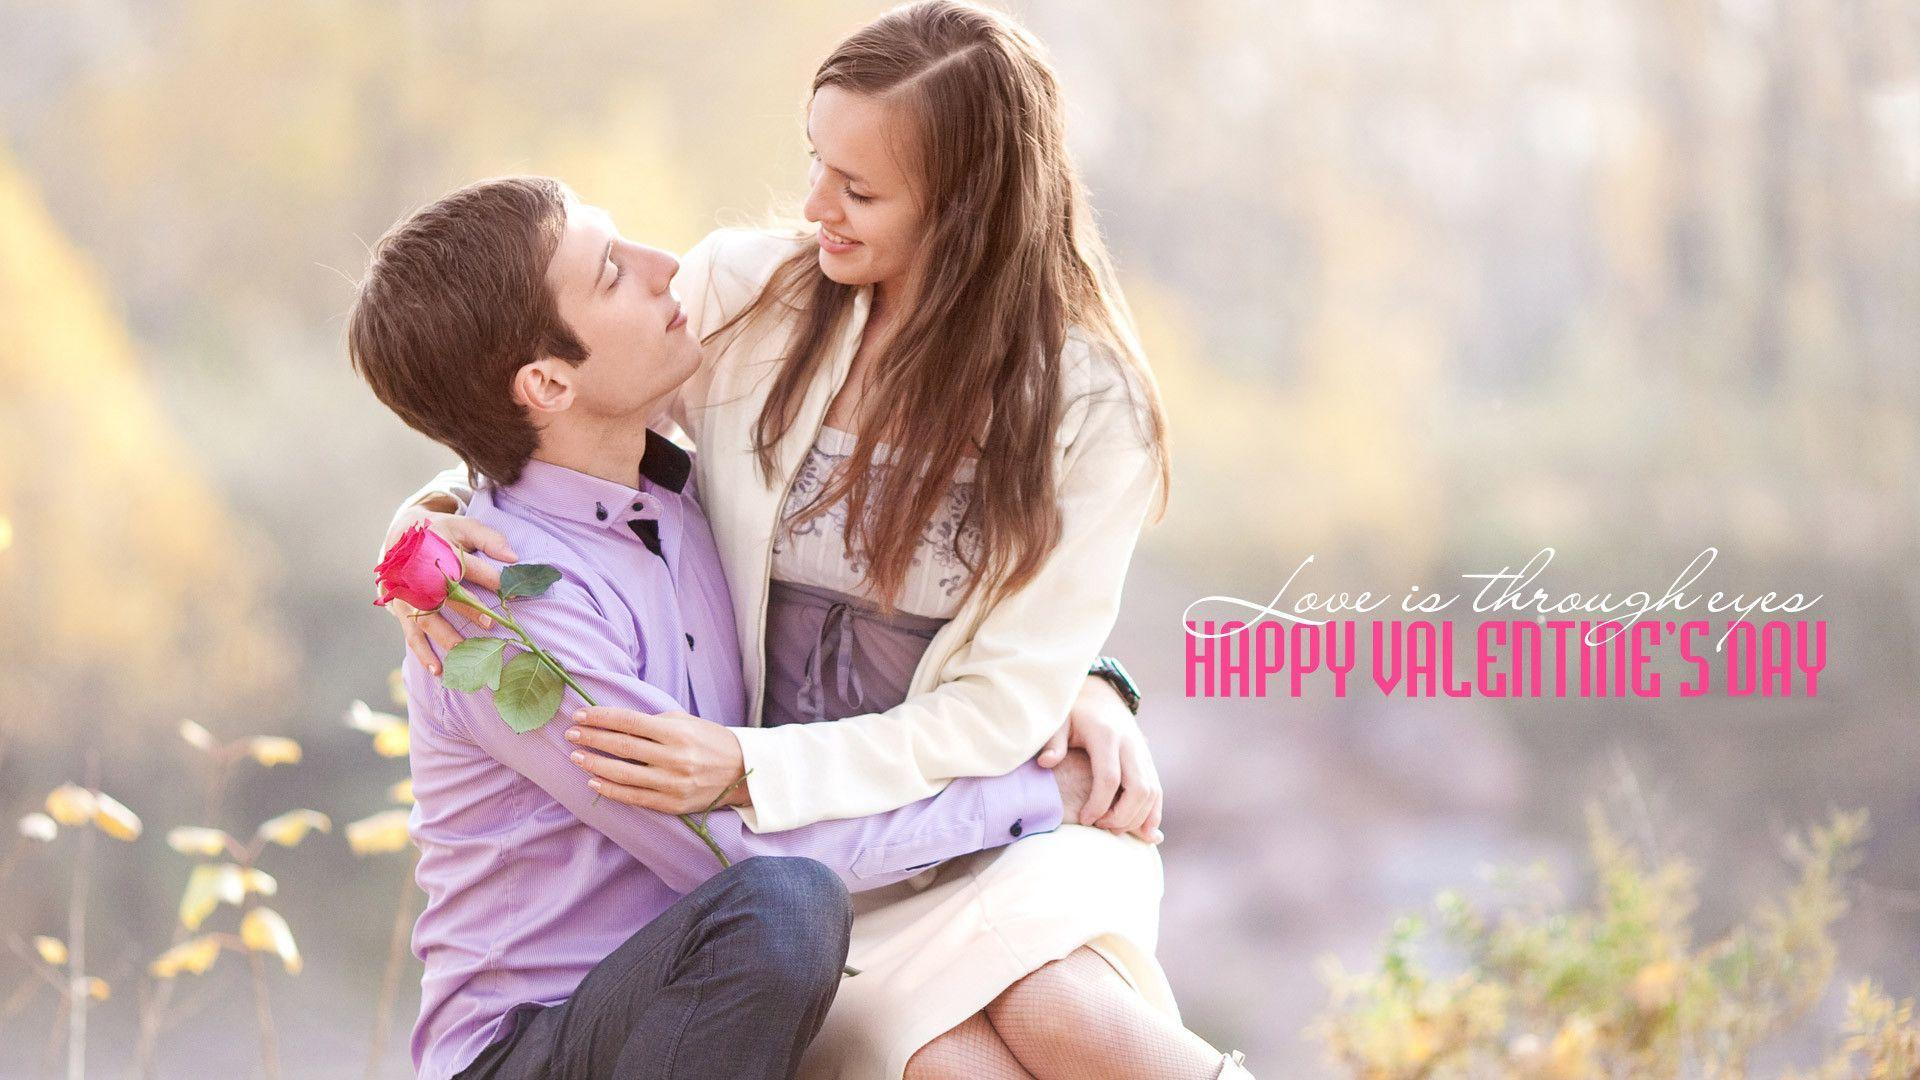 Wallpaper Love couple cute : cute couple Backgrounds - Wallpaper cave